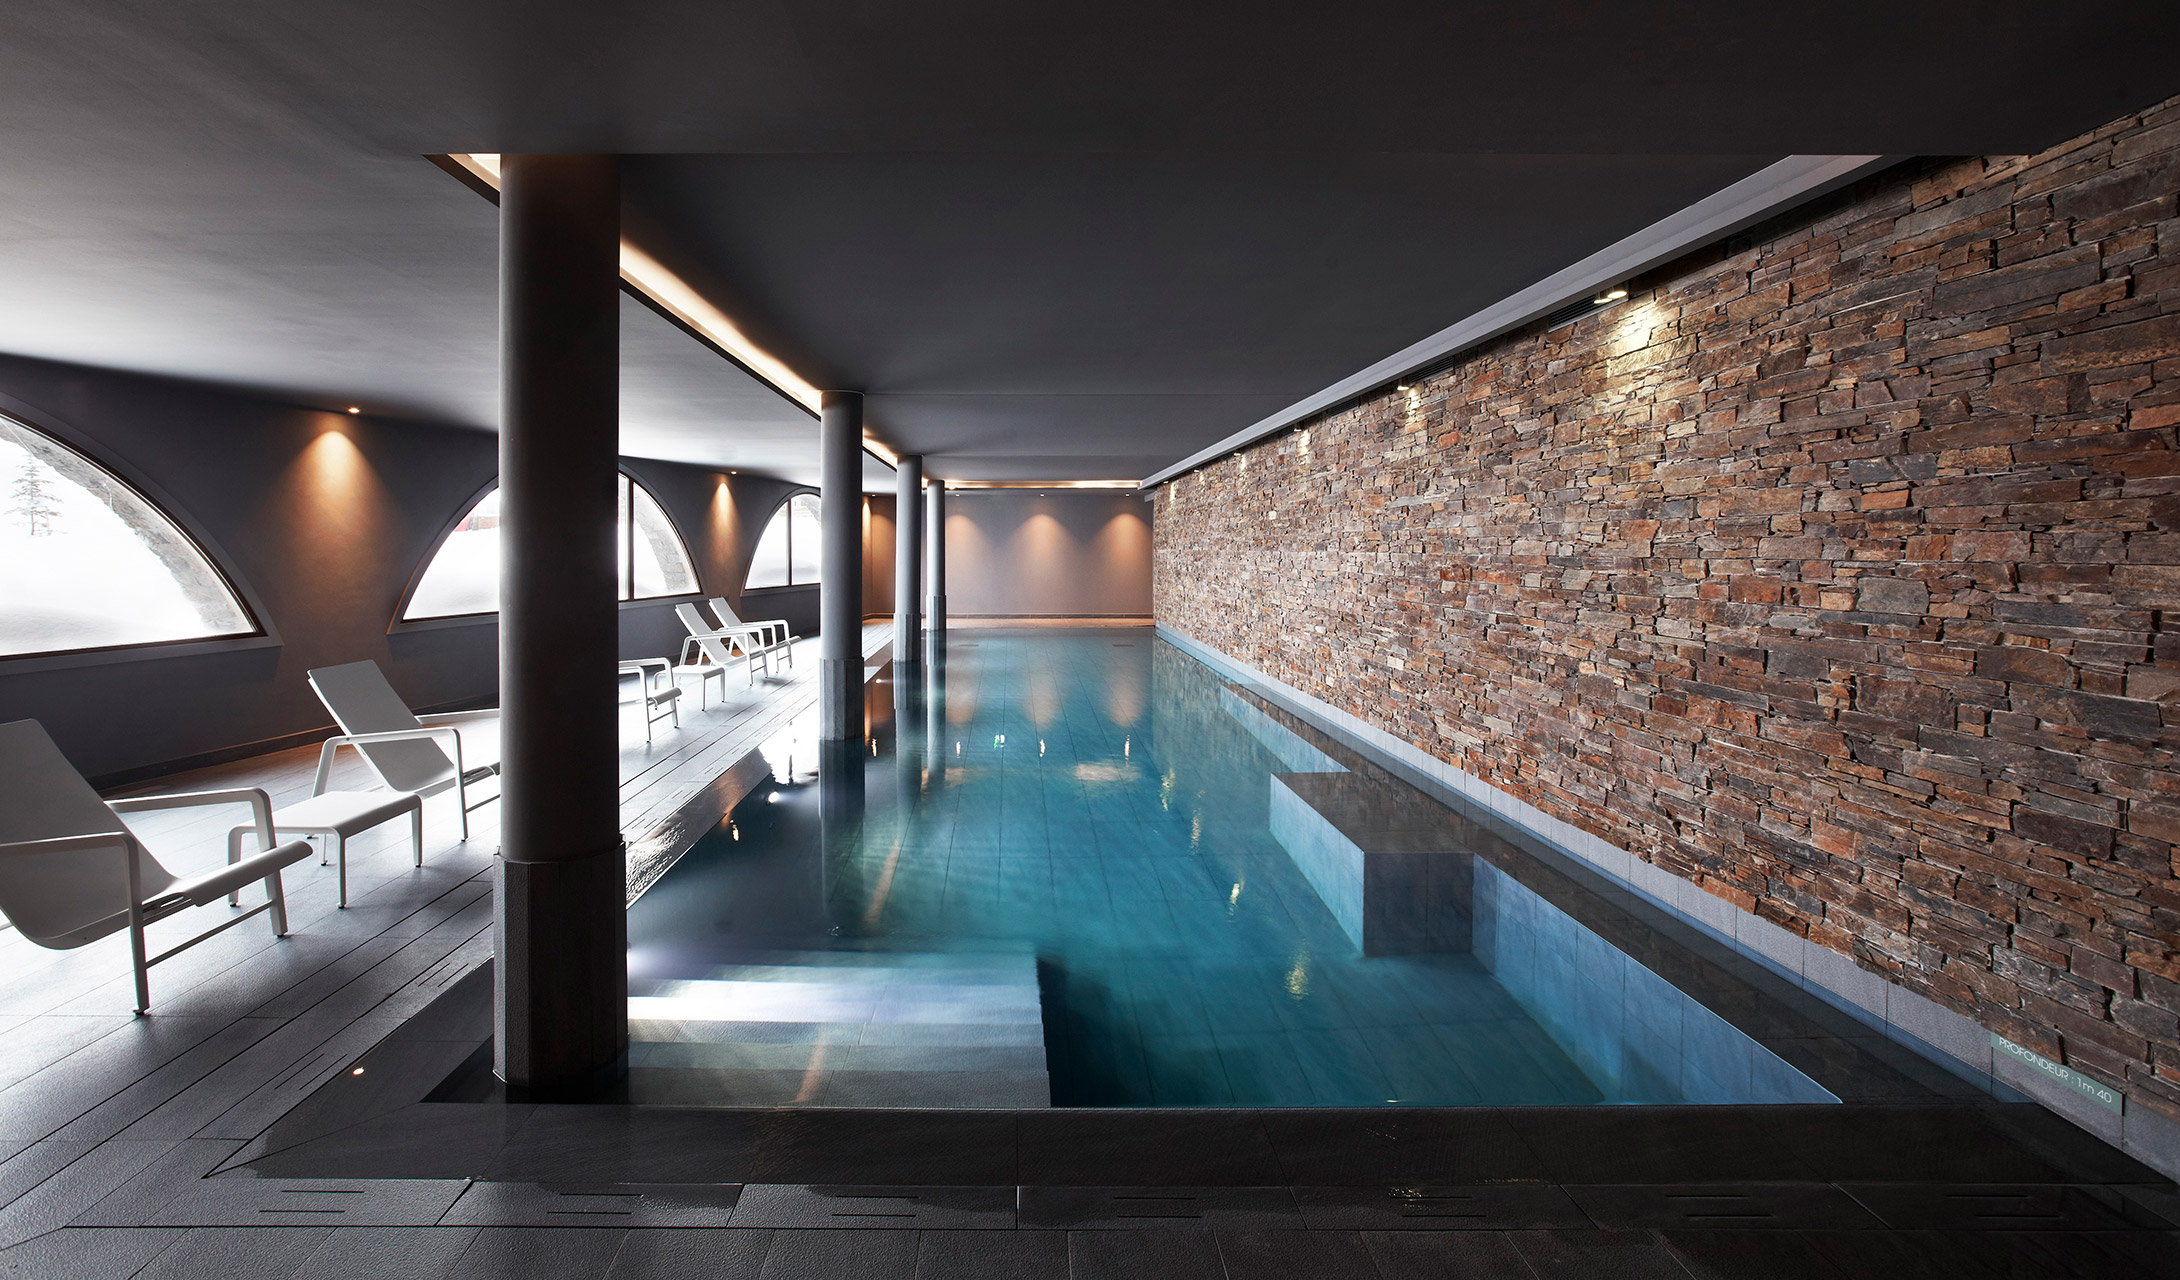 Le val thorens val thorens france design hotels for Hotels design en france